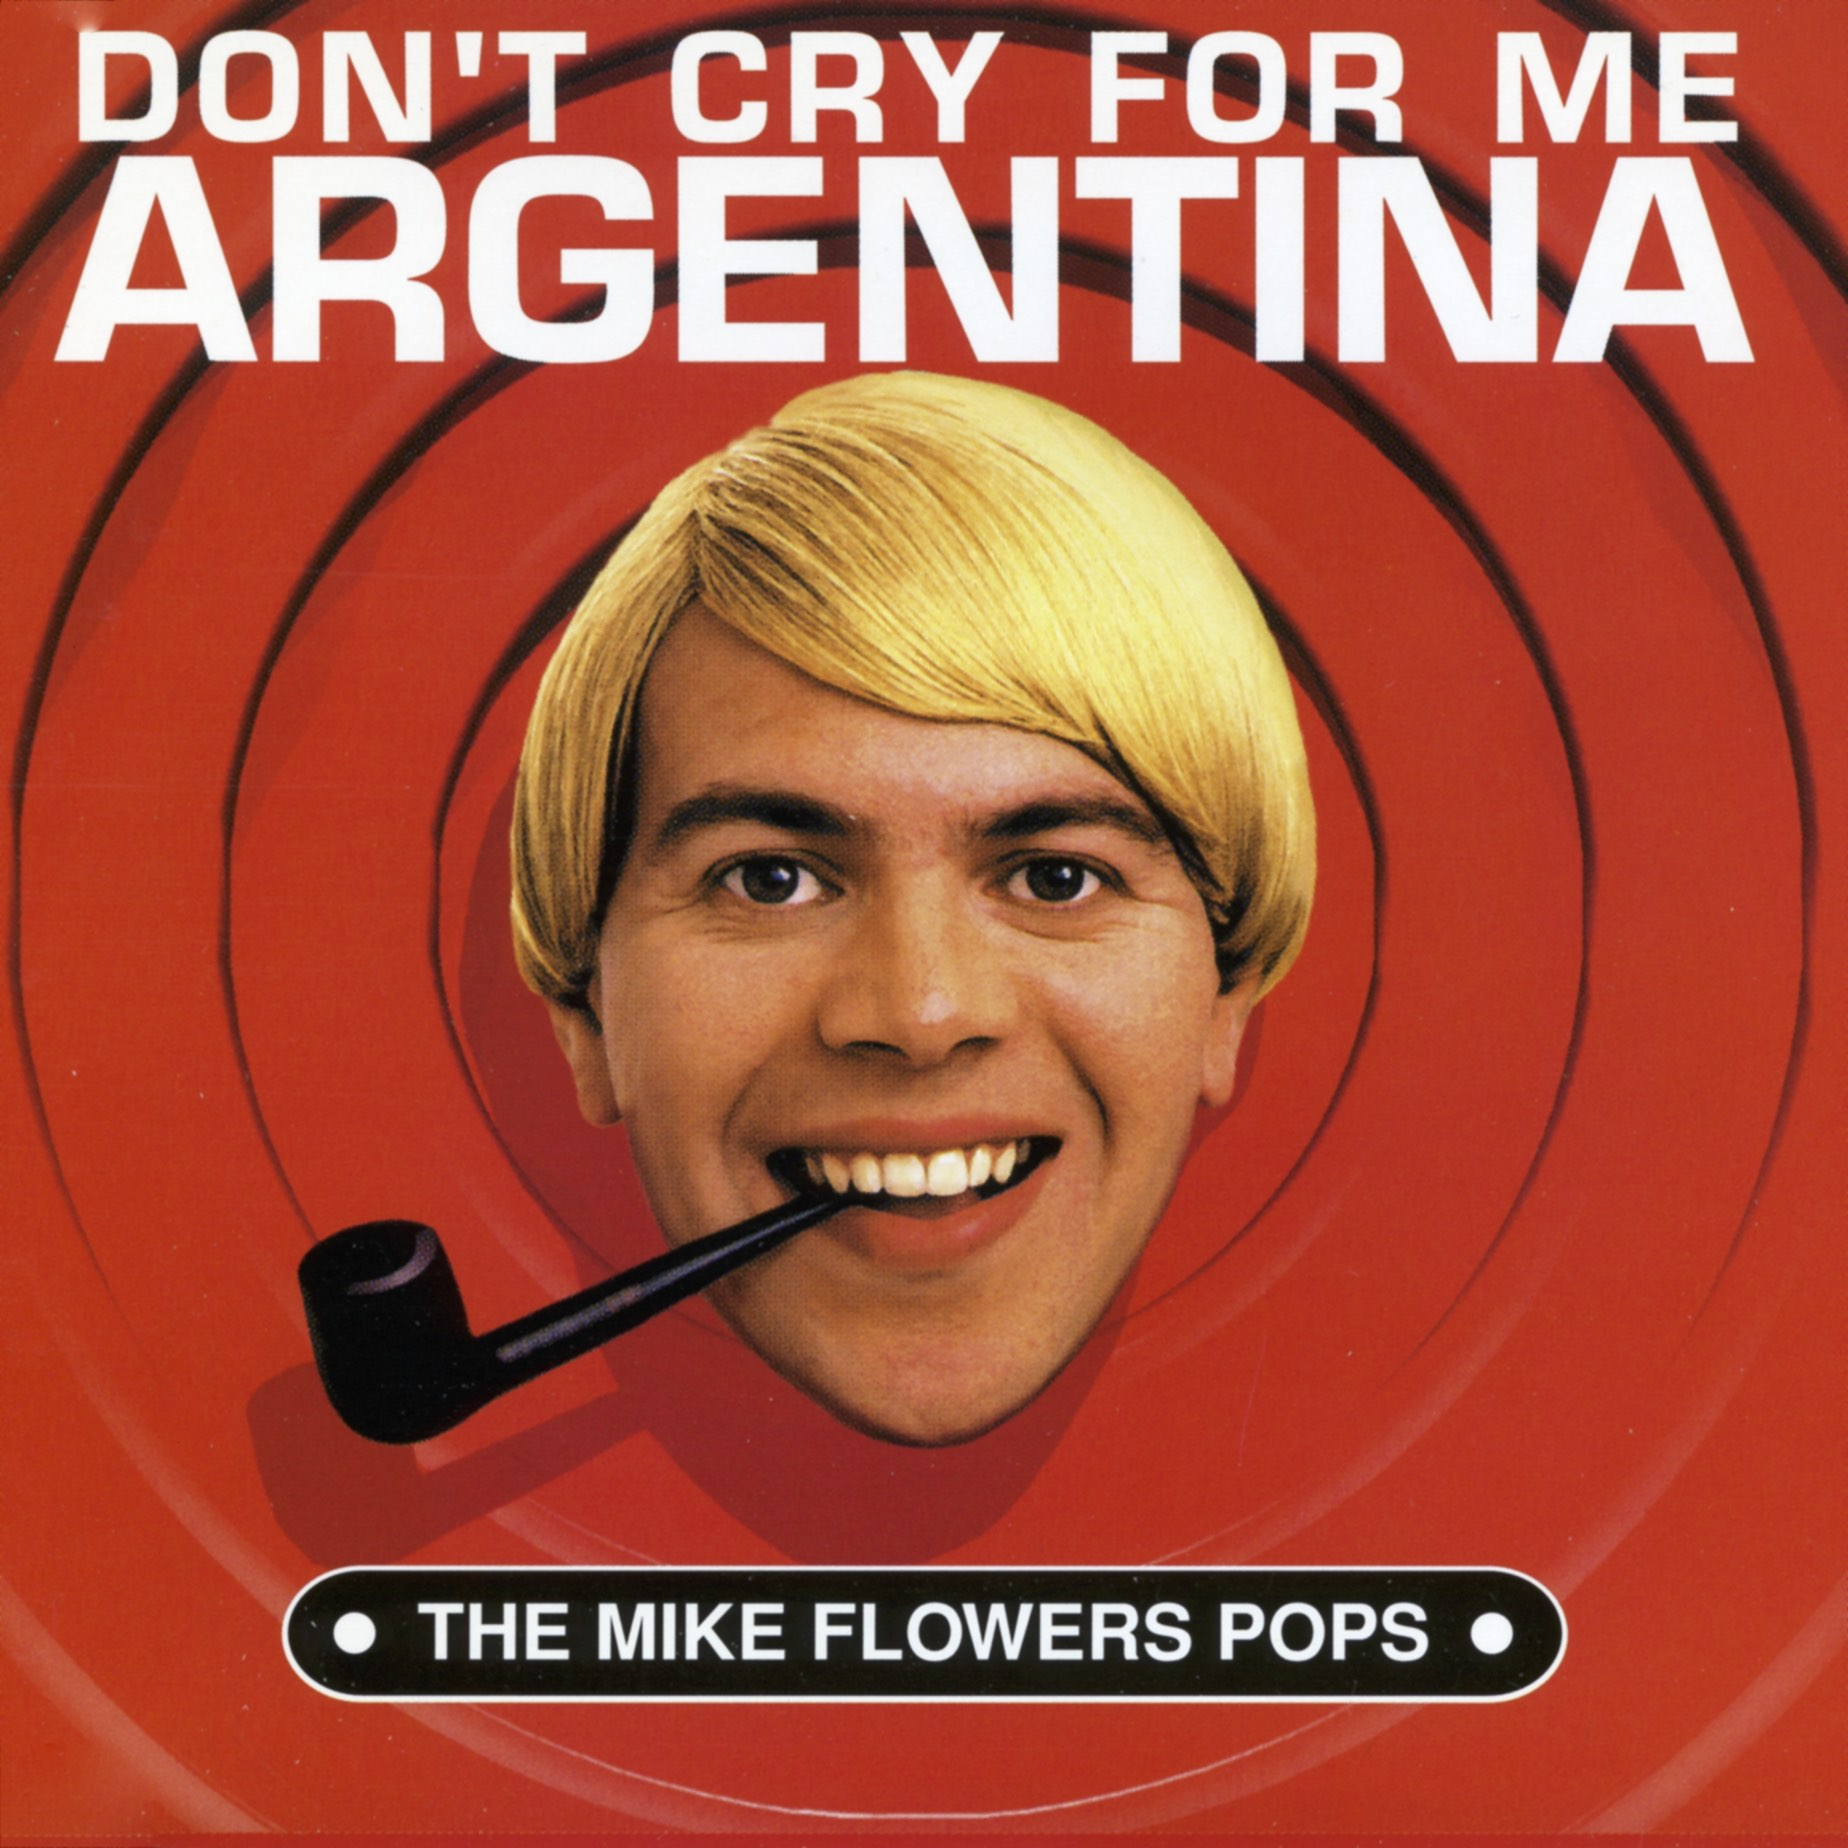 1996 - The Mike Flower Pops